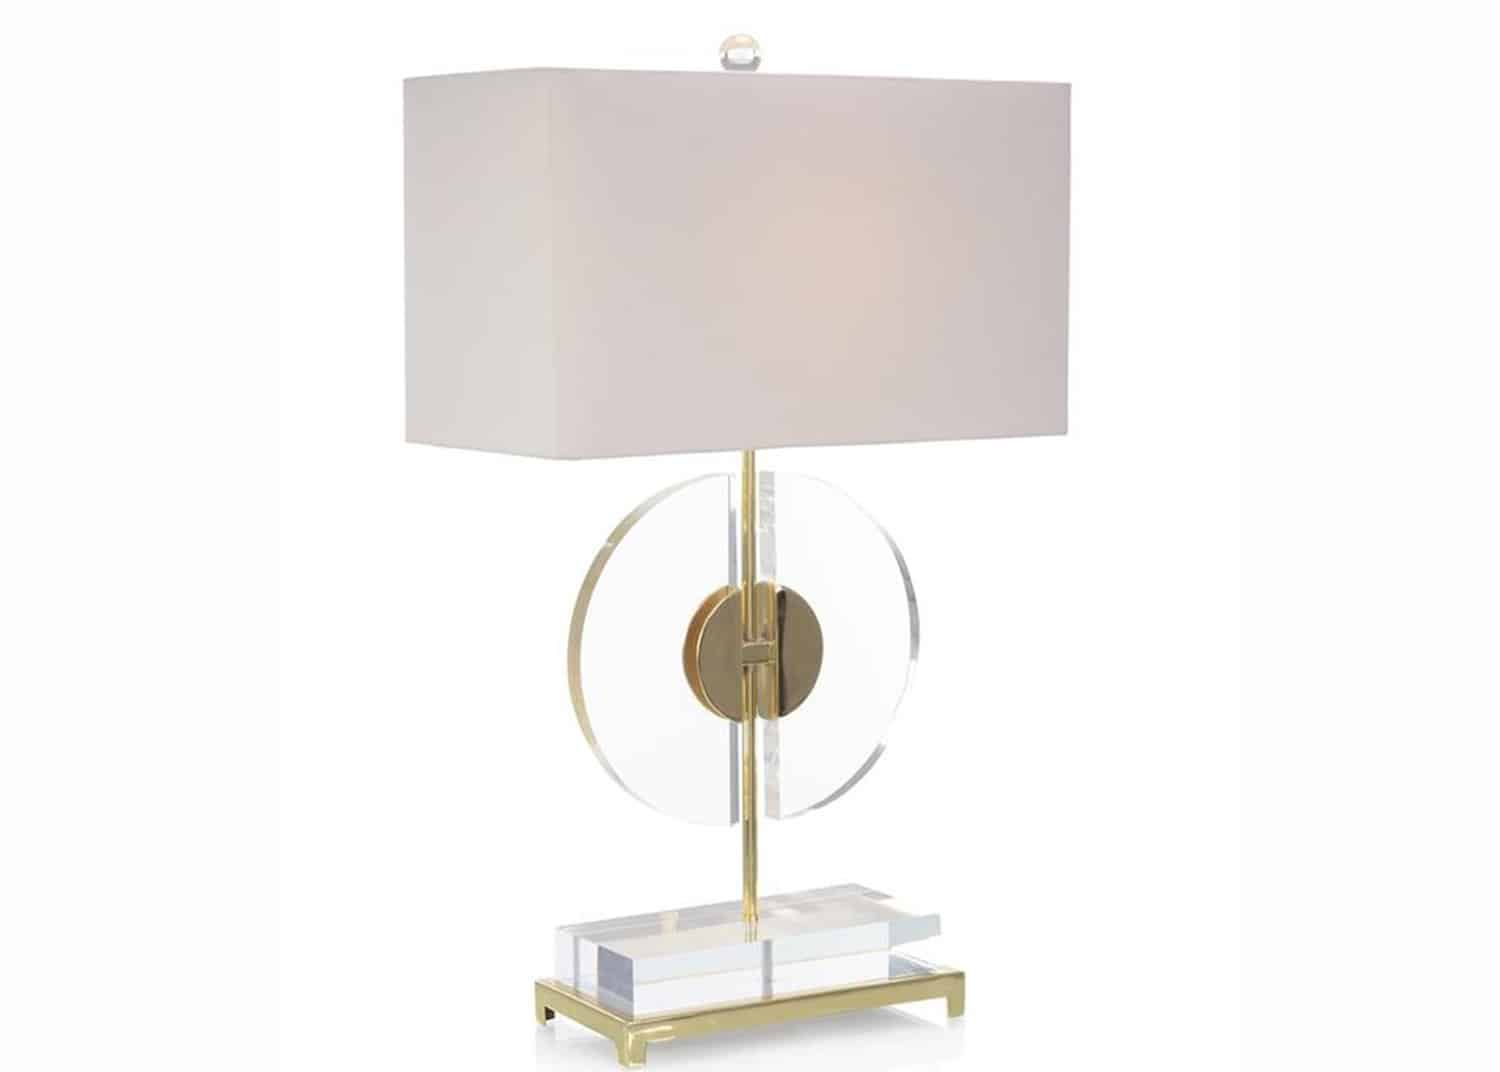 Architectural brass and acrylic lamp